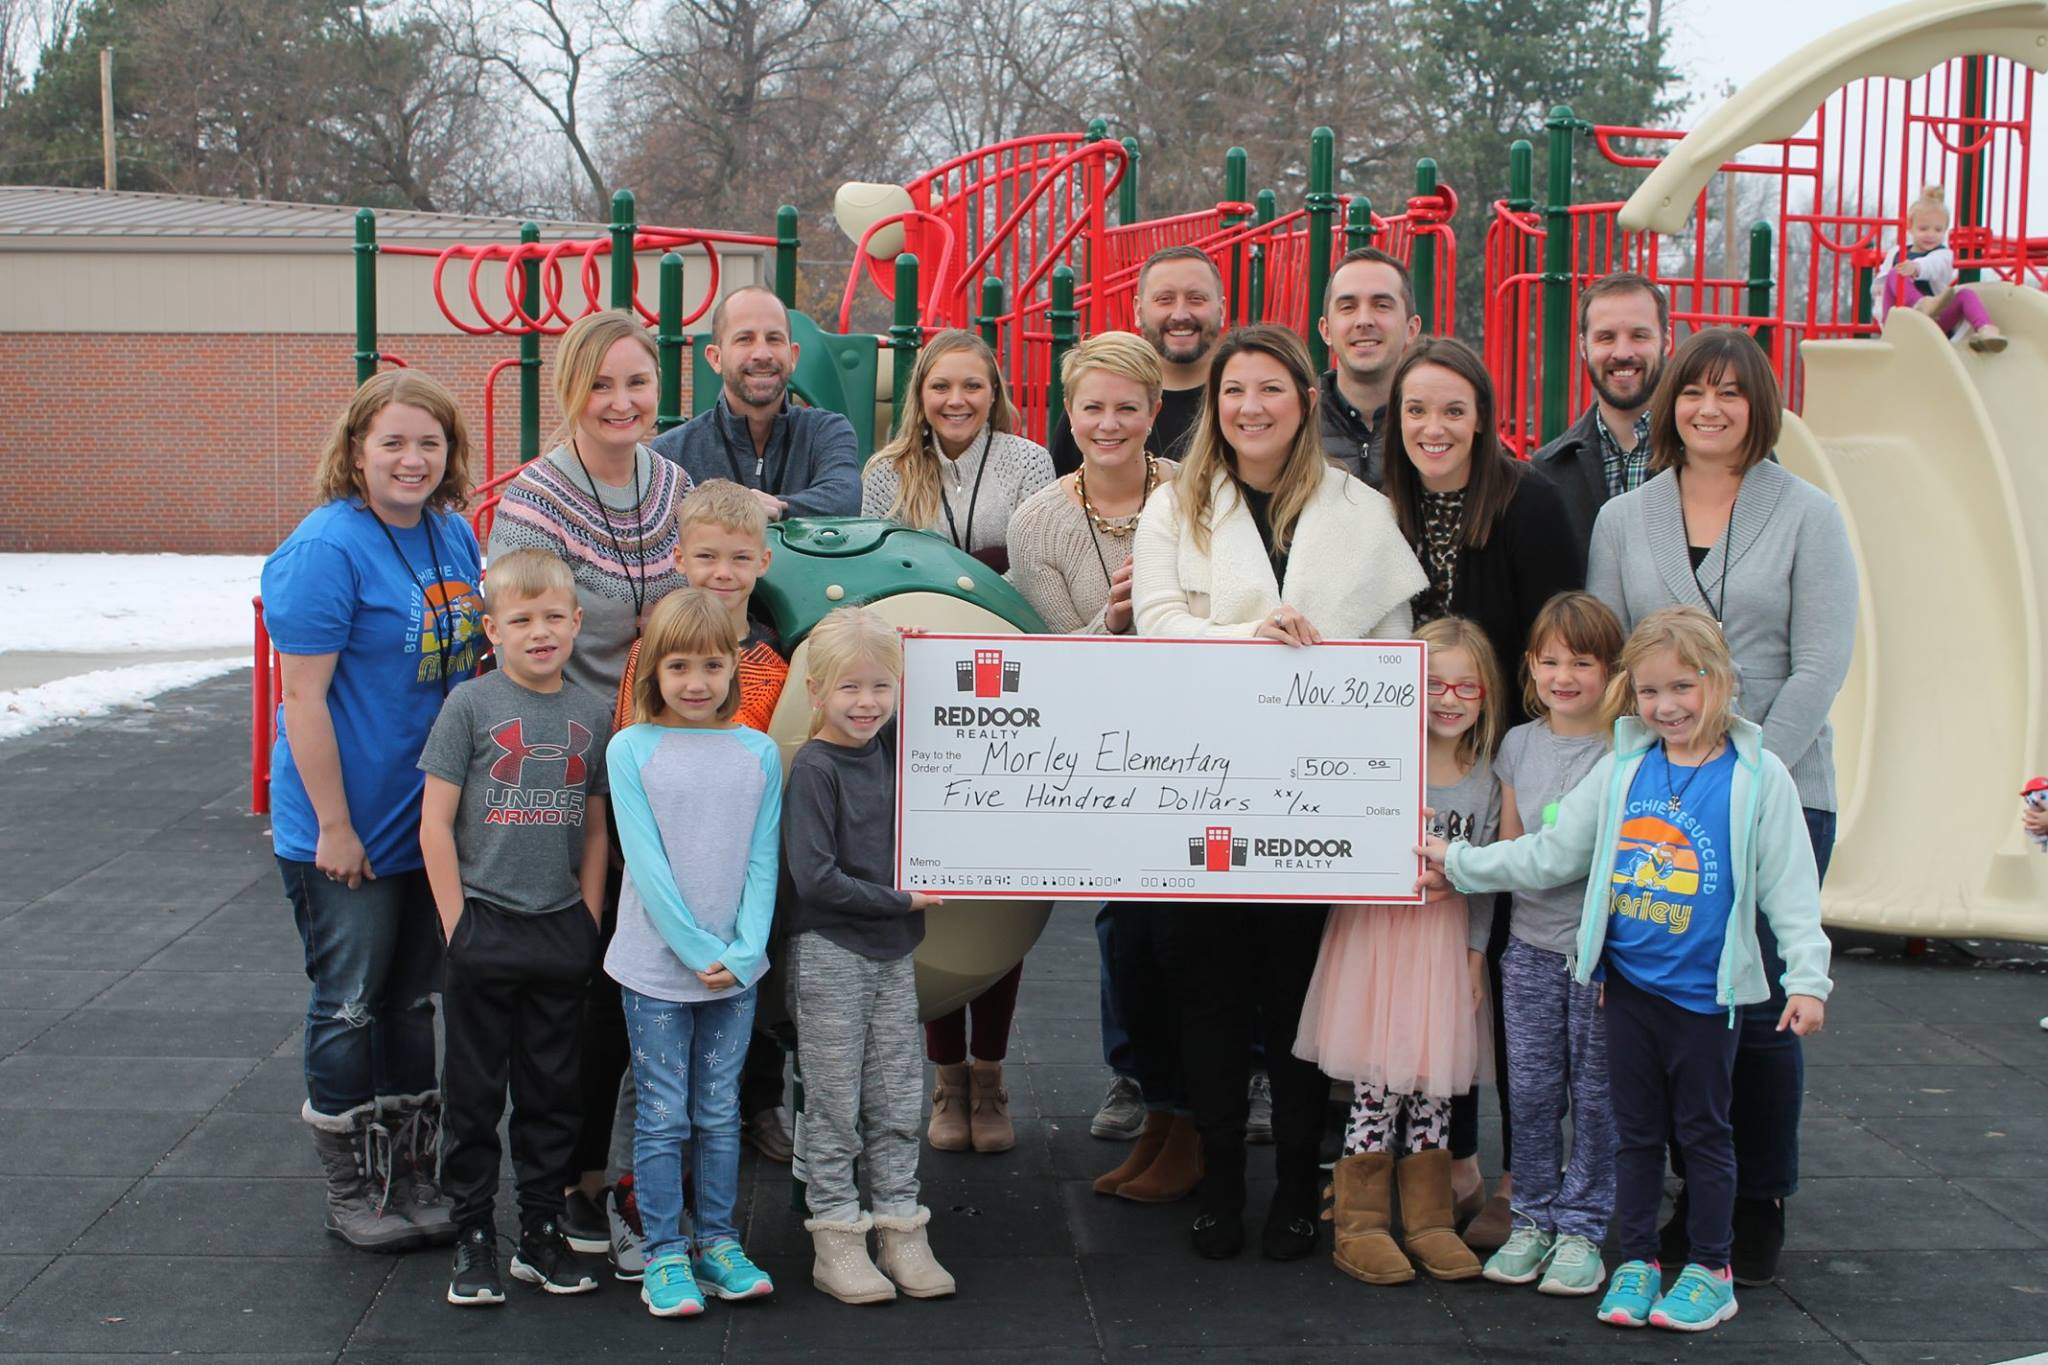 Morley Elementary School Playground Fund